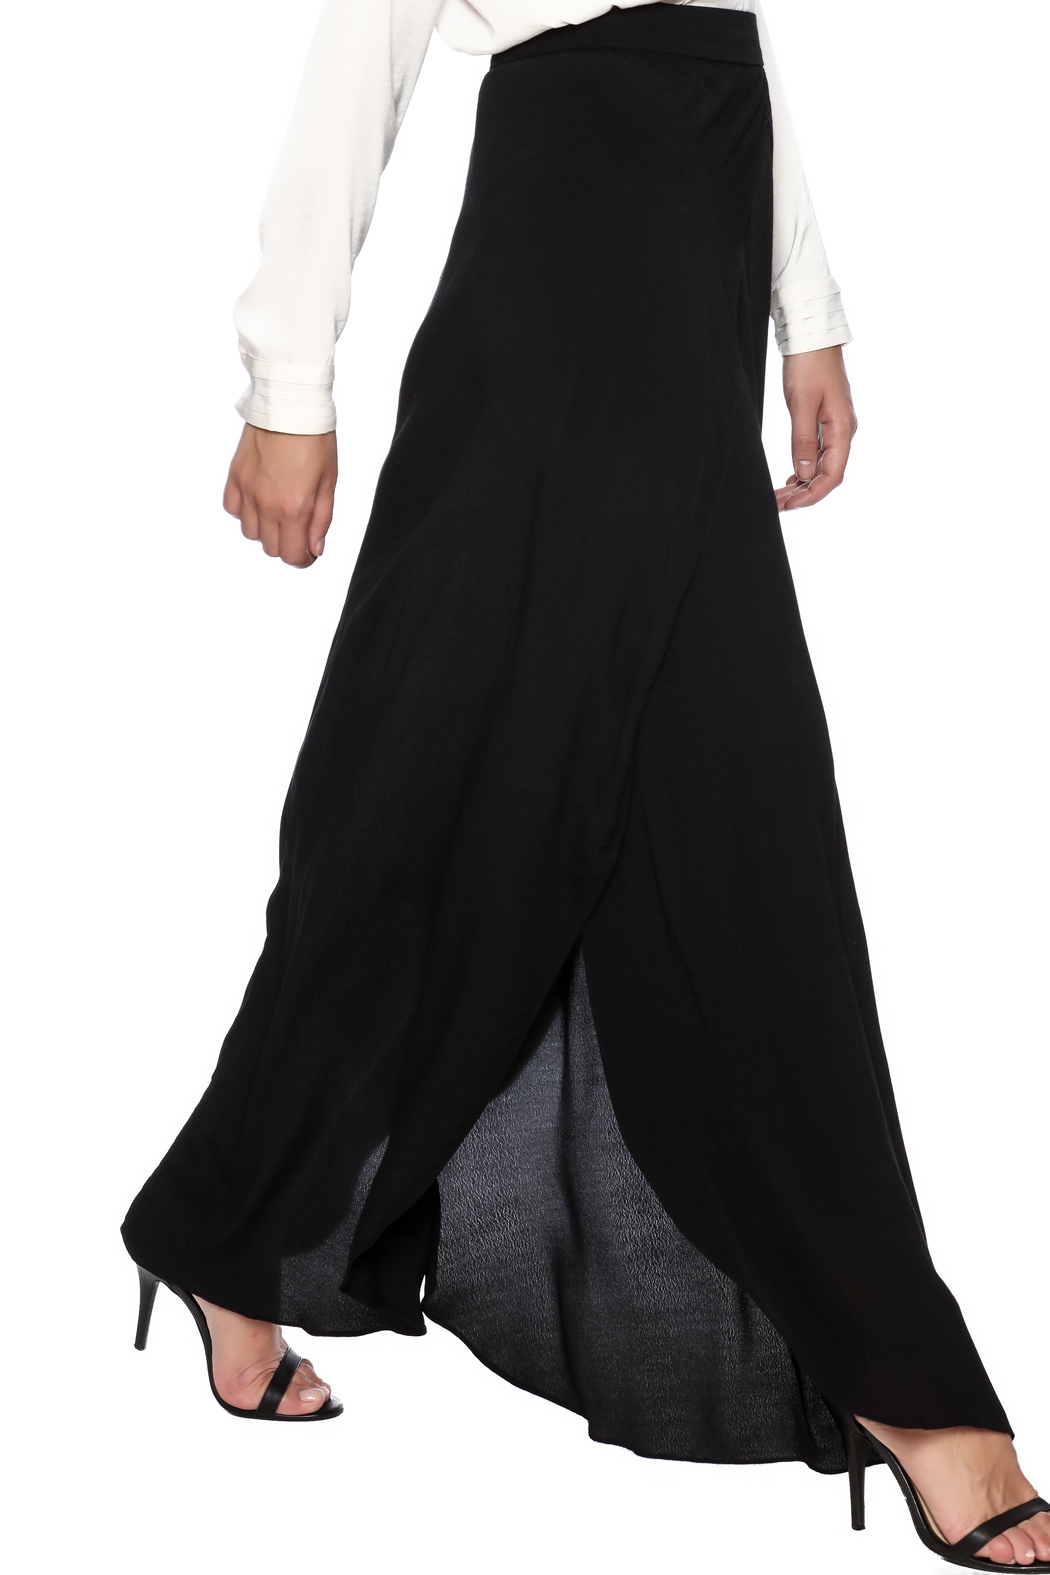 sis sis high slit maxi skirt from atlanta by sole shoes